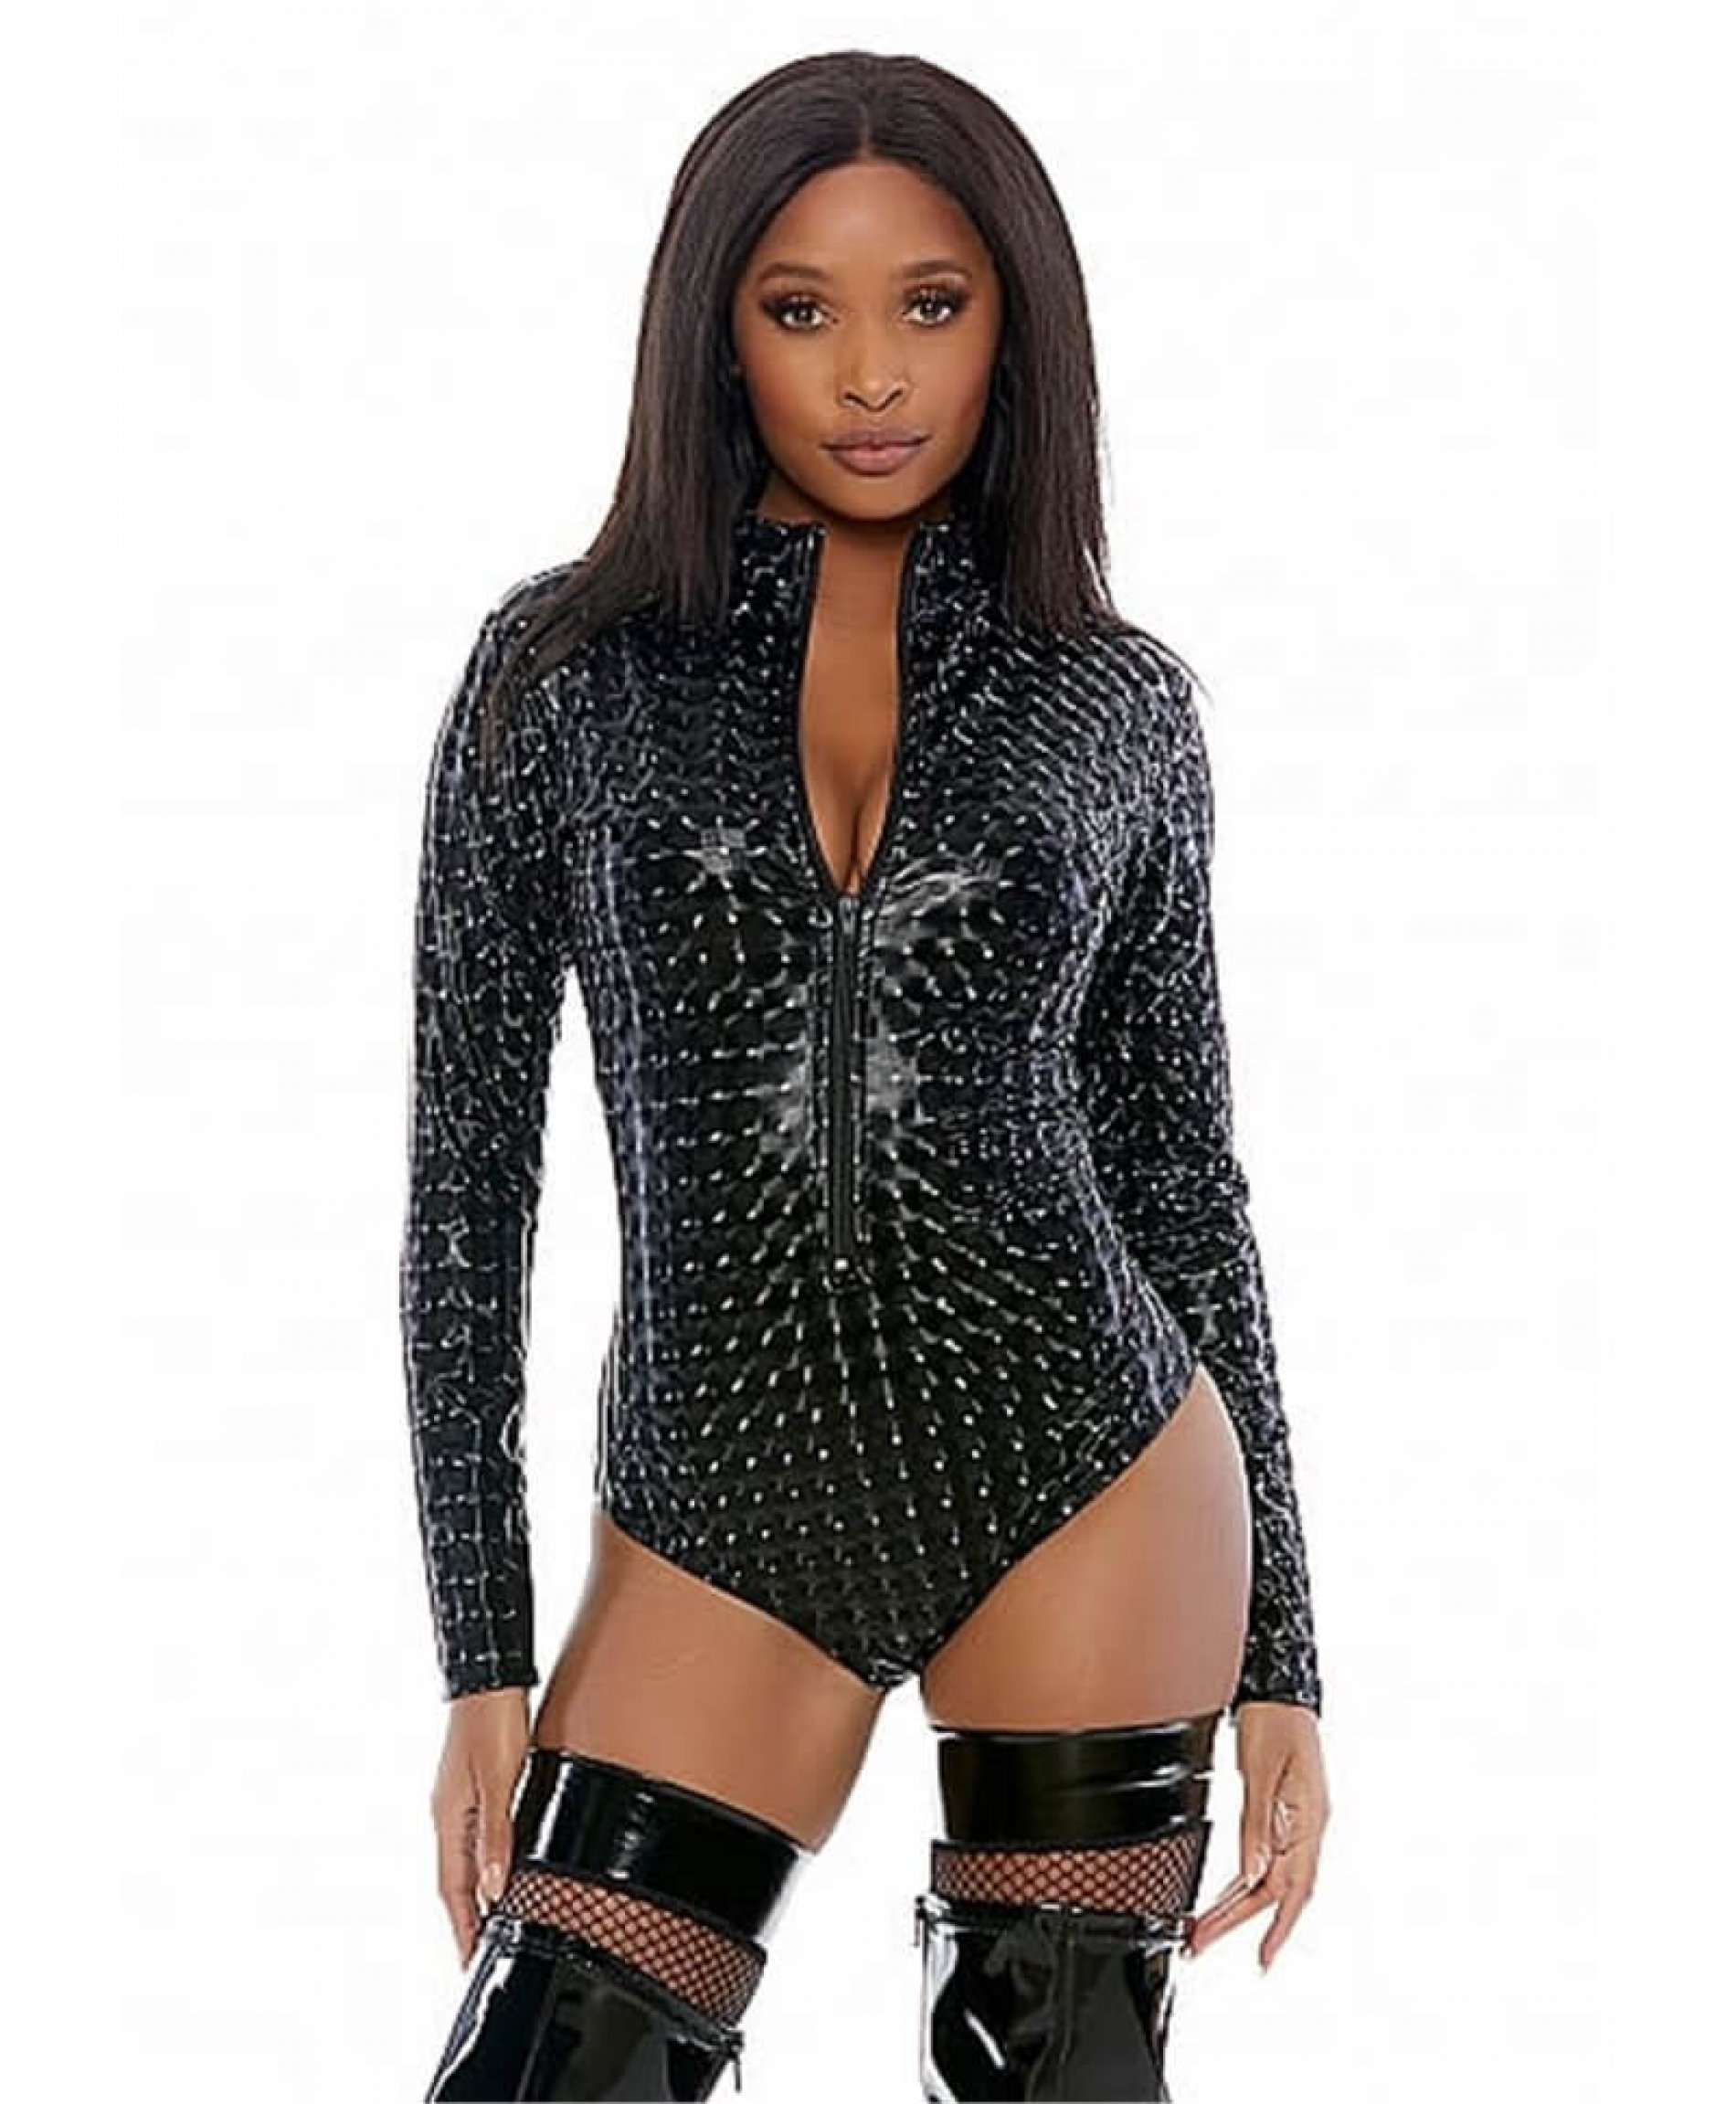 Forplay Zipfront hologram Bodysuit black